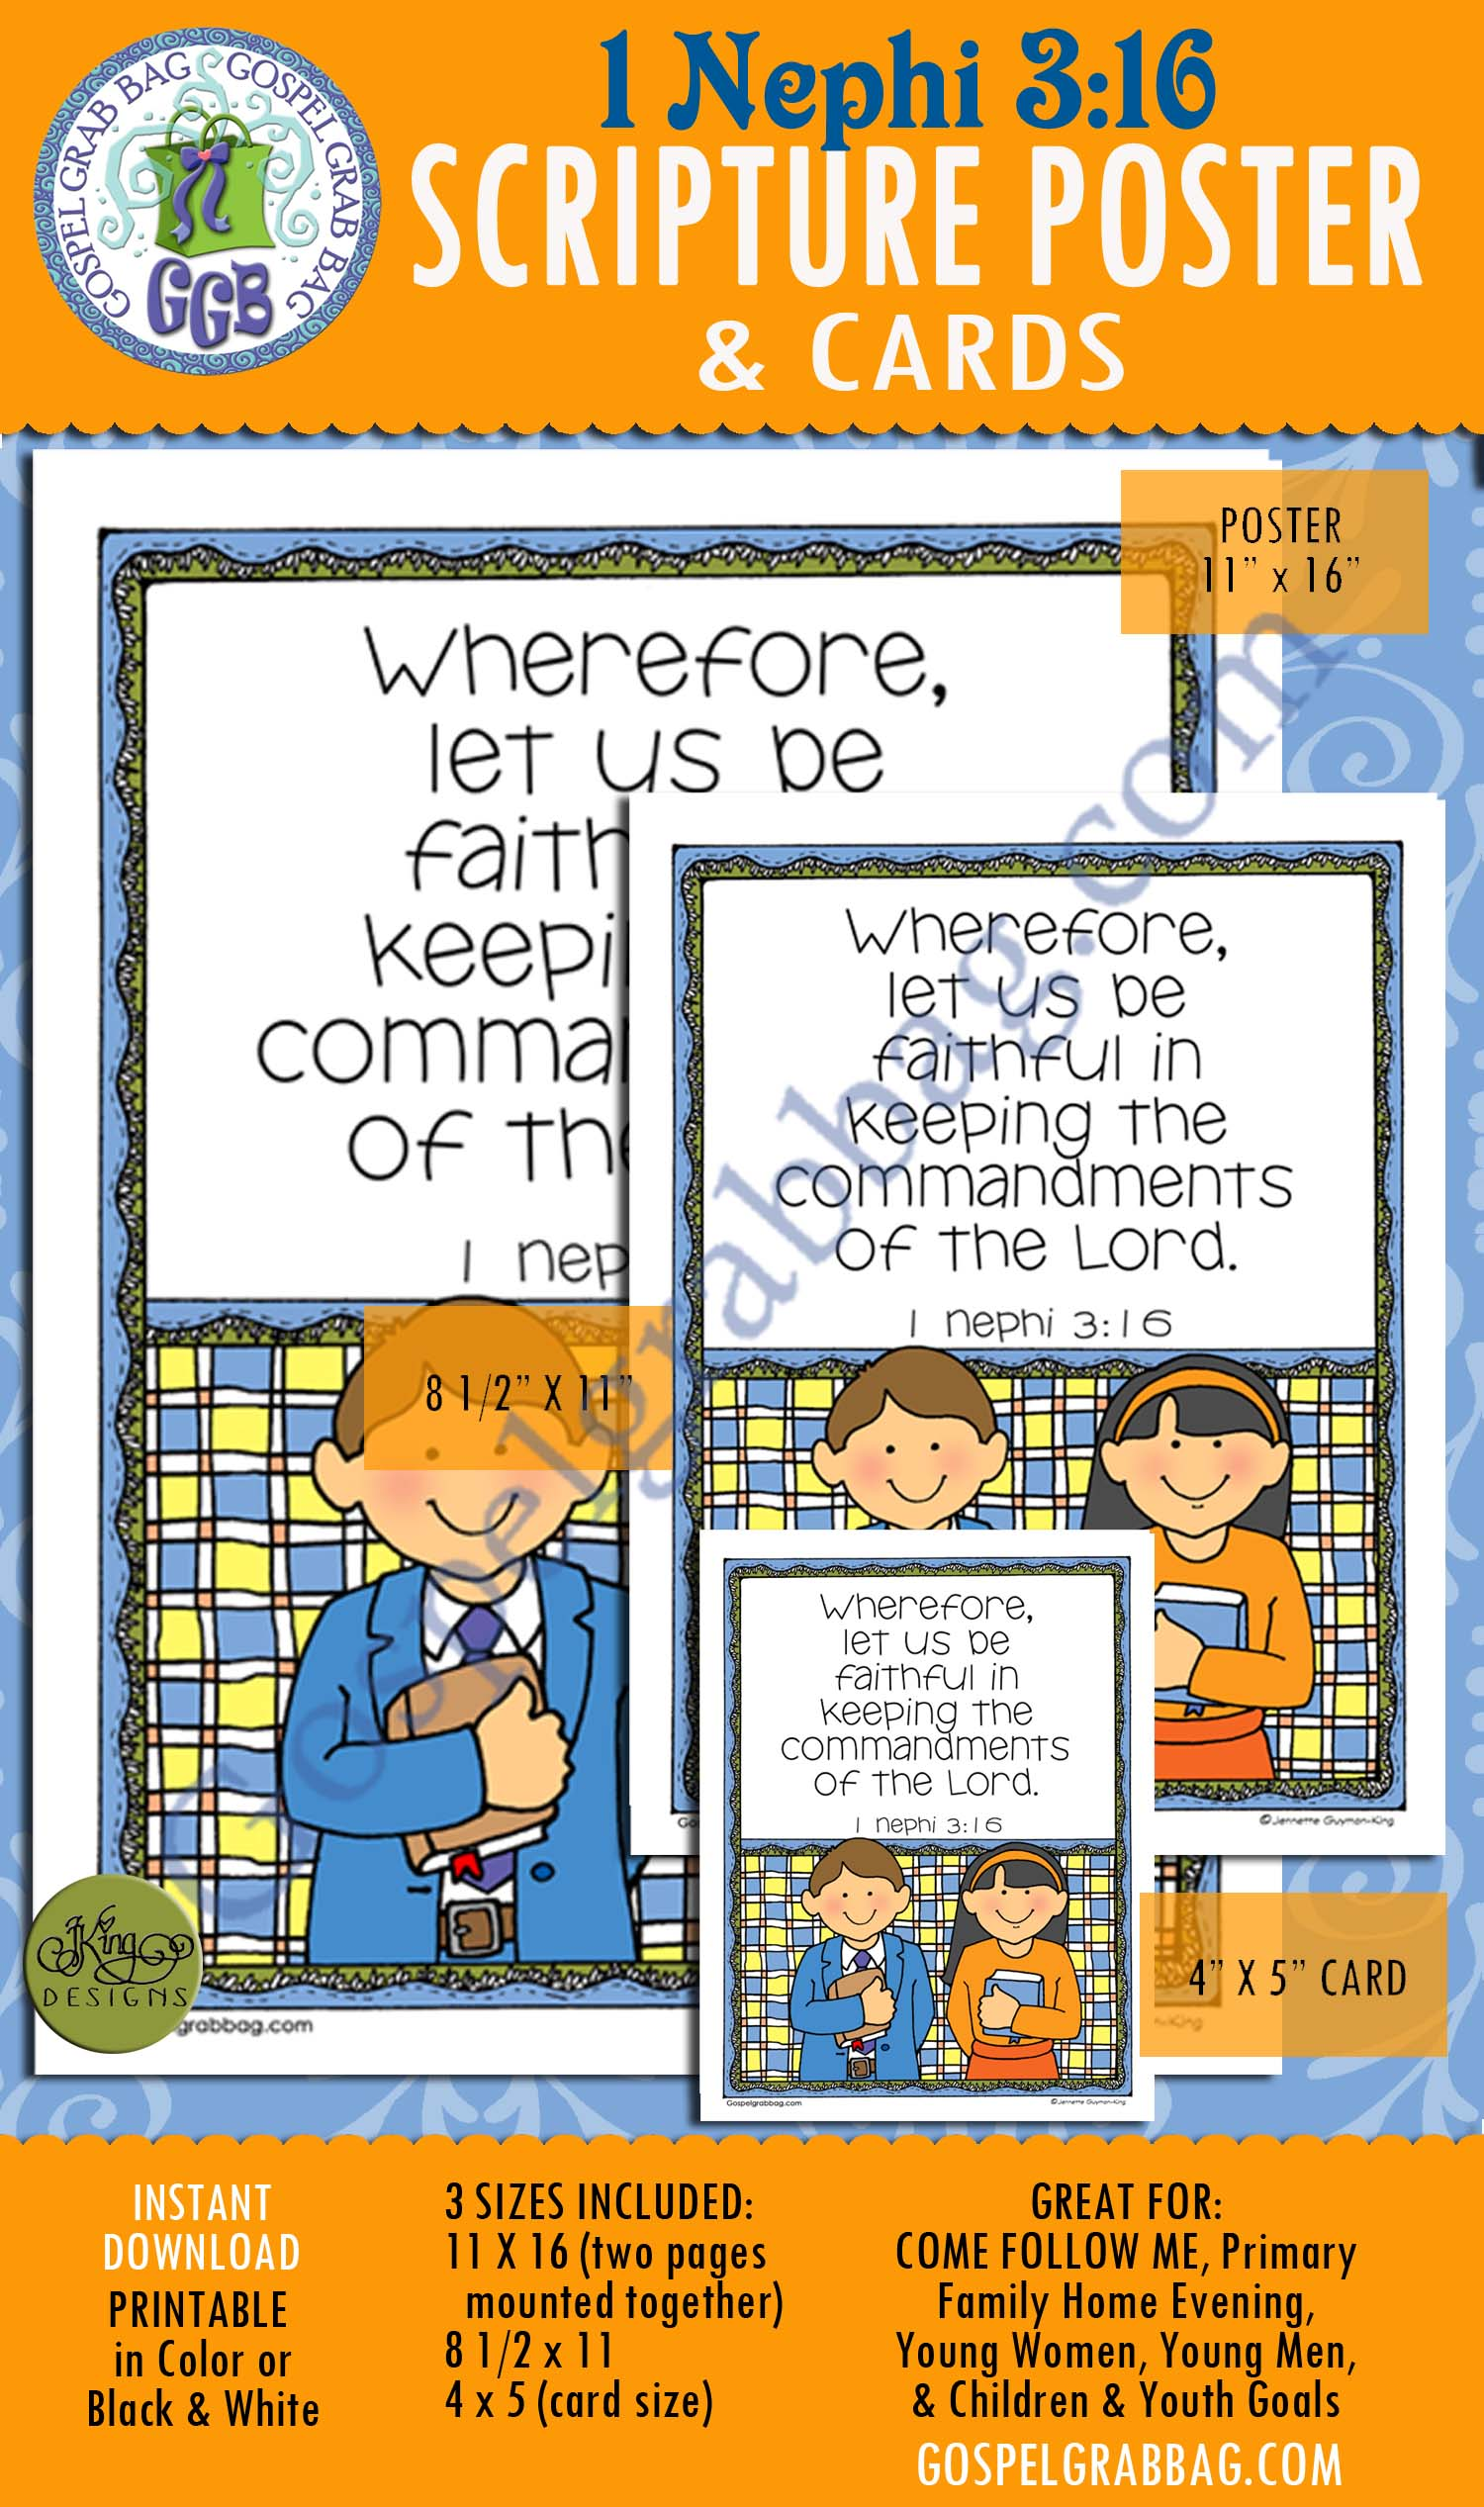 "$0.75 - Choose the Right: Scripture Poster, 1 Nephi 3:16, LDS Lesson Activity for: Primary, Youth, and Family Home Evening, ""Wherefore, let us be faithful in keeping the commandments of the Lord."" Choose the right by living gospel principles. gospelgrabbag.com"